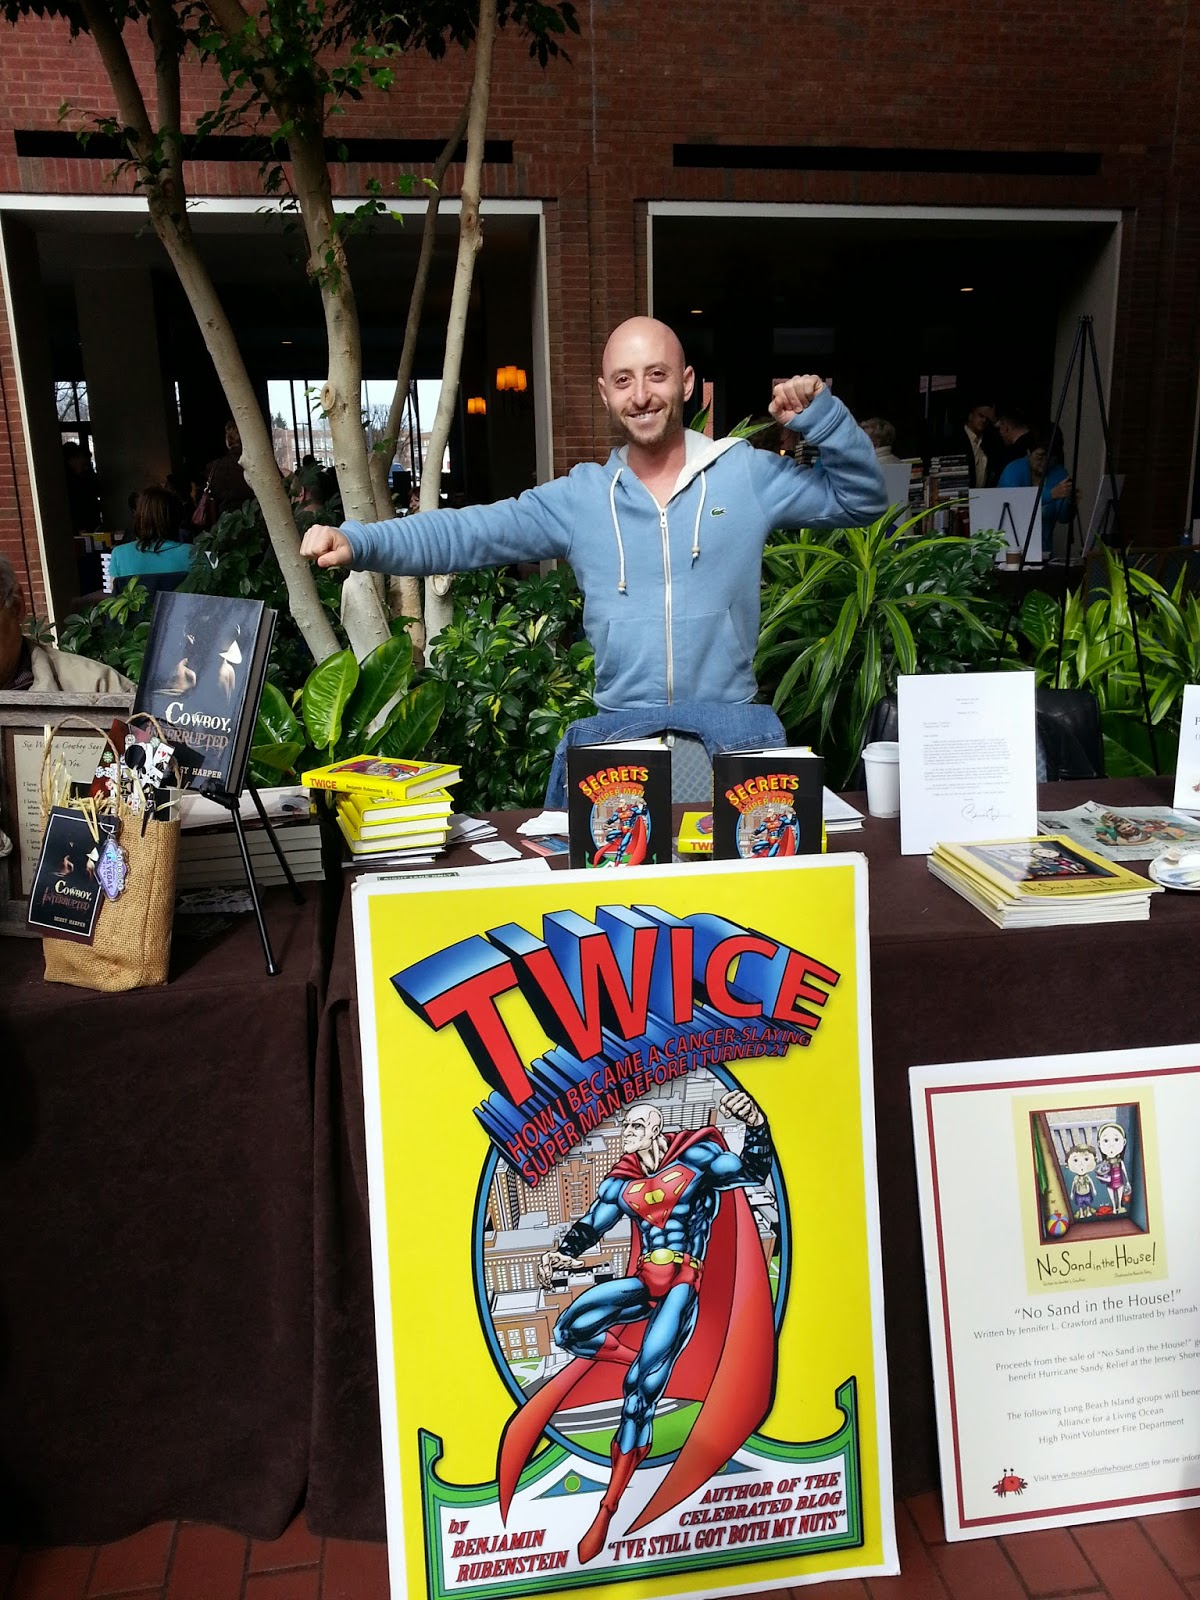 Author Benjamin Rubenstein with his book display at the 2014 Virginia Festival of the Book